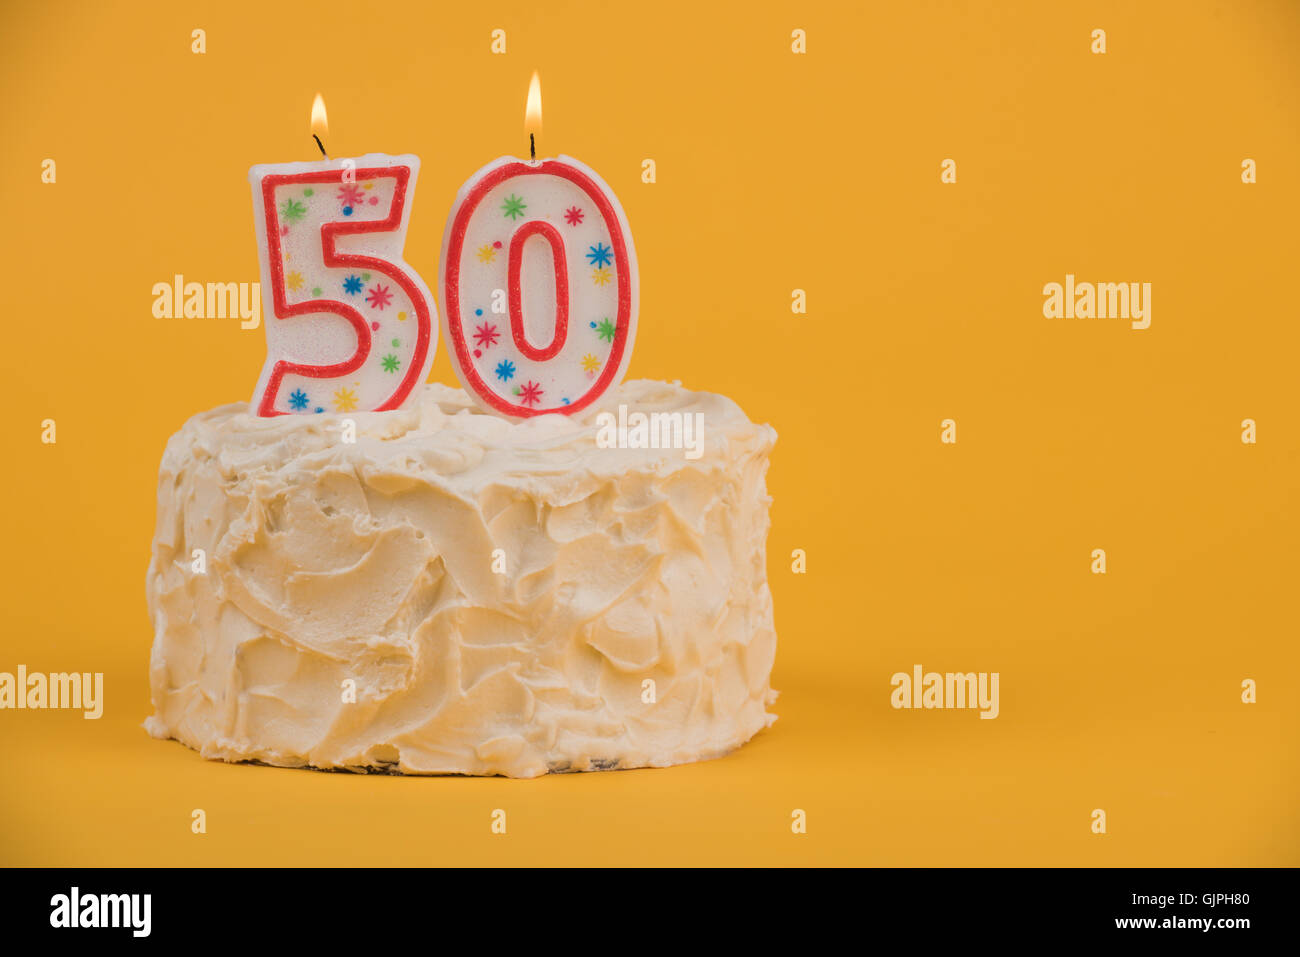 White Frosted Cake With 50 Candles Stock Photo 114822512 Alamy